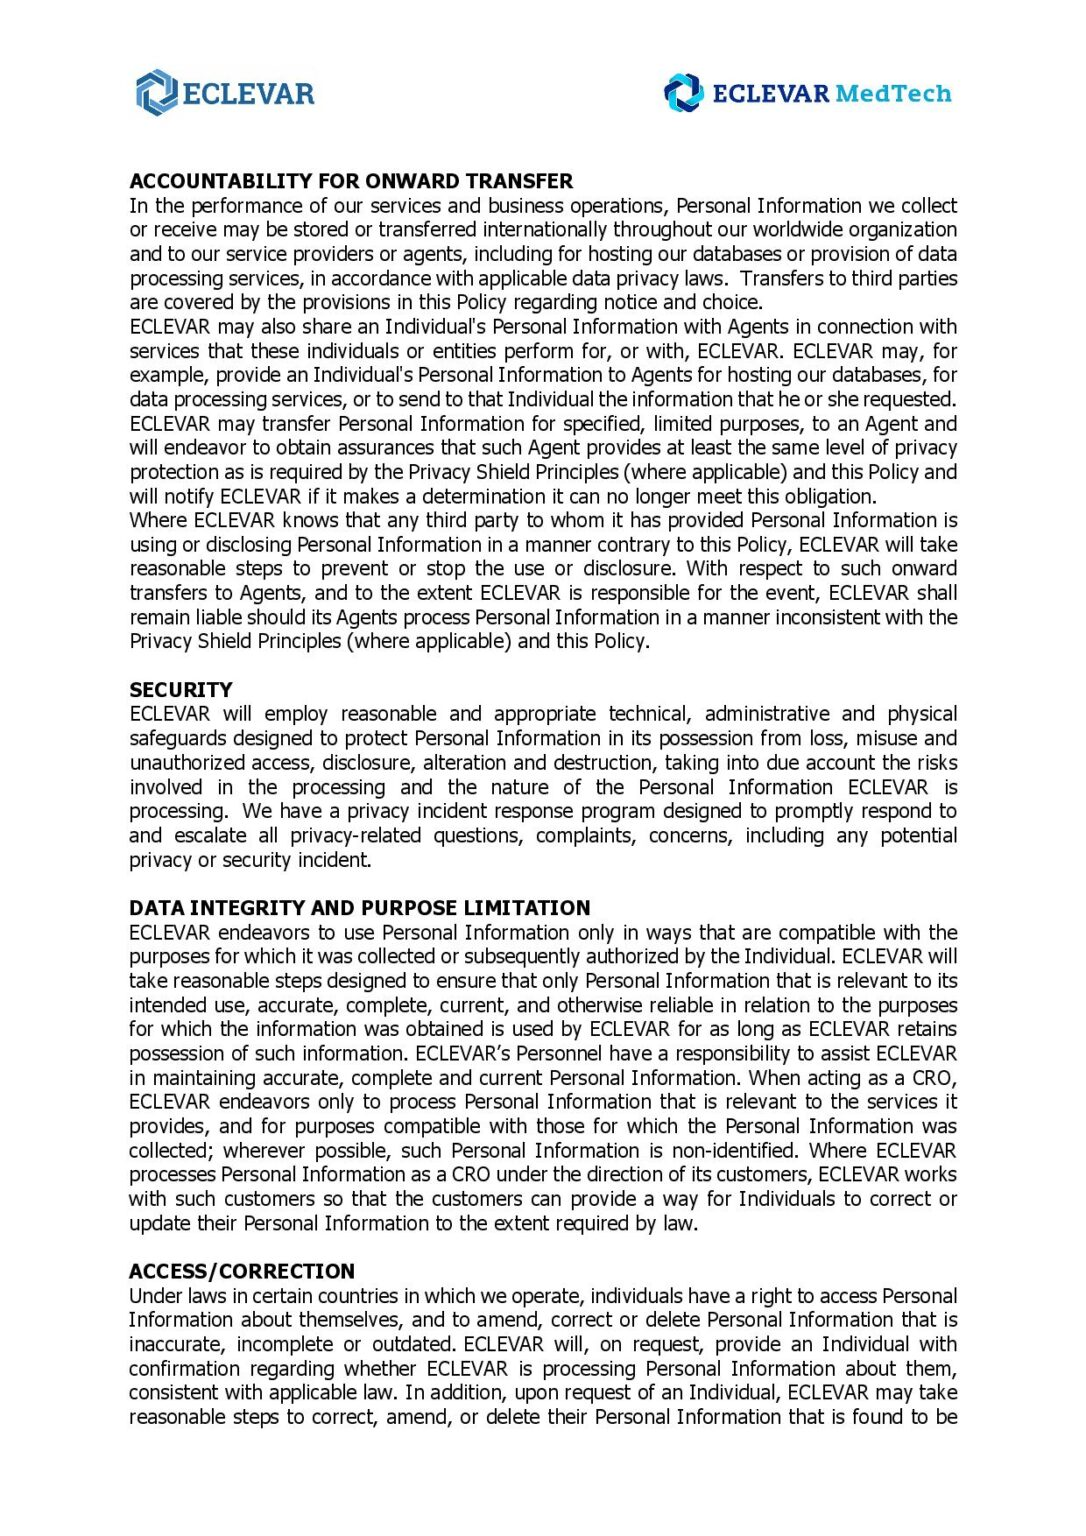 ECLEVAR PRIVACY 19 08 2020 _MedTech-page-004